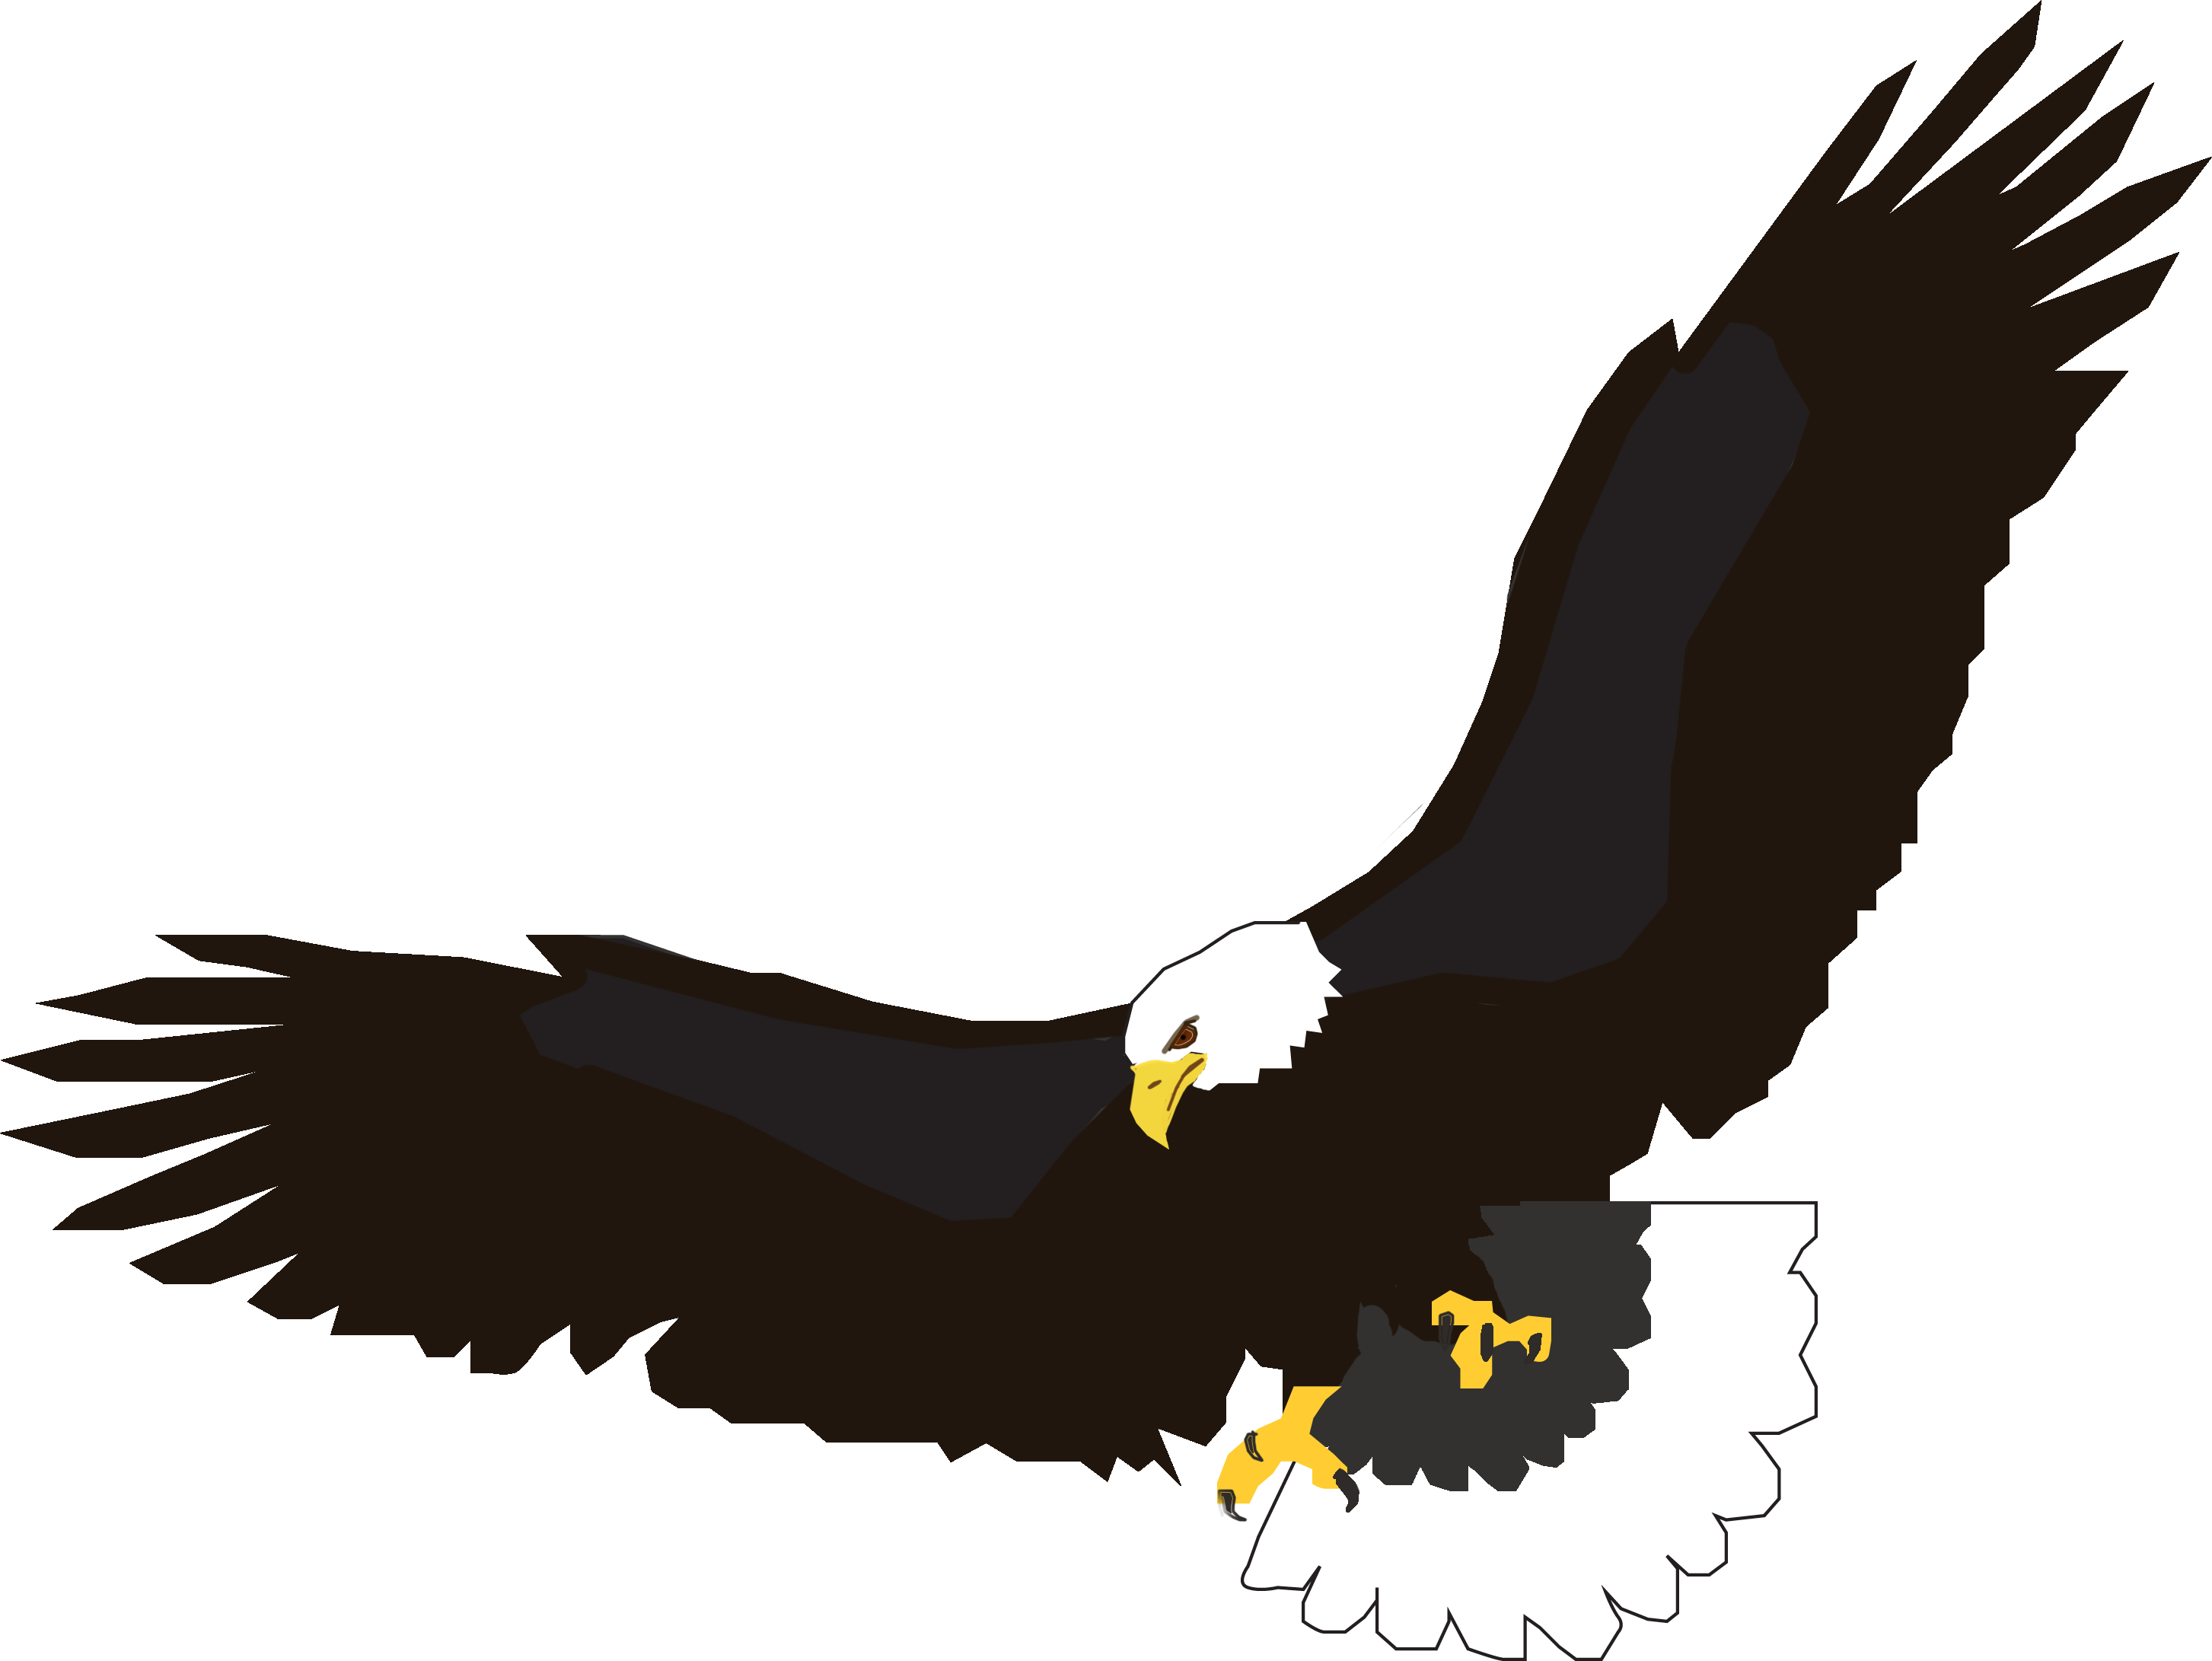 native cliparts art pinterest wings logo free clipart images rh pinterest com flying eagle clipart png animated flying eagle clipart